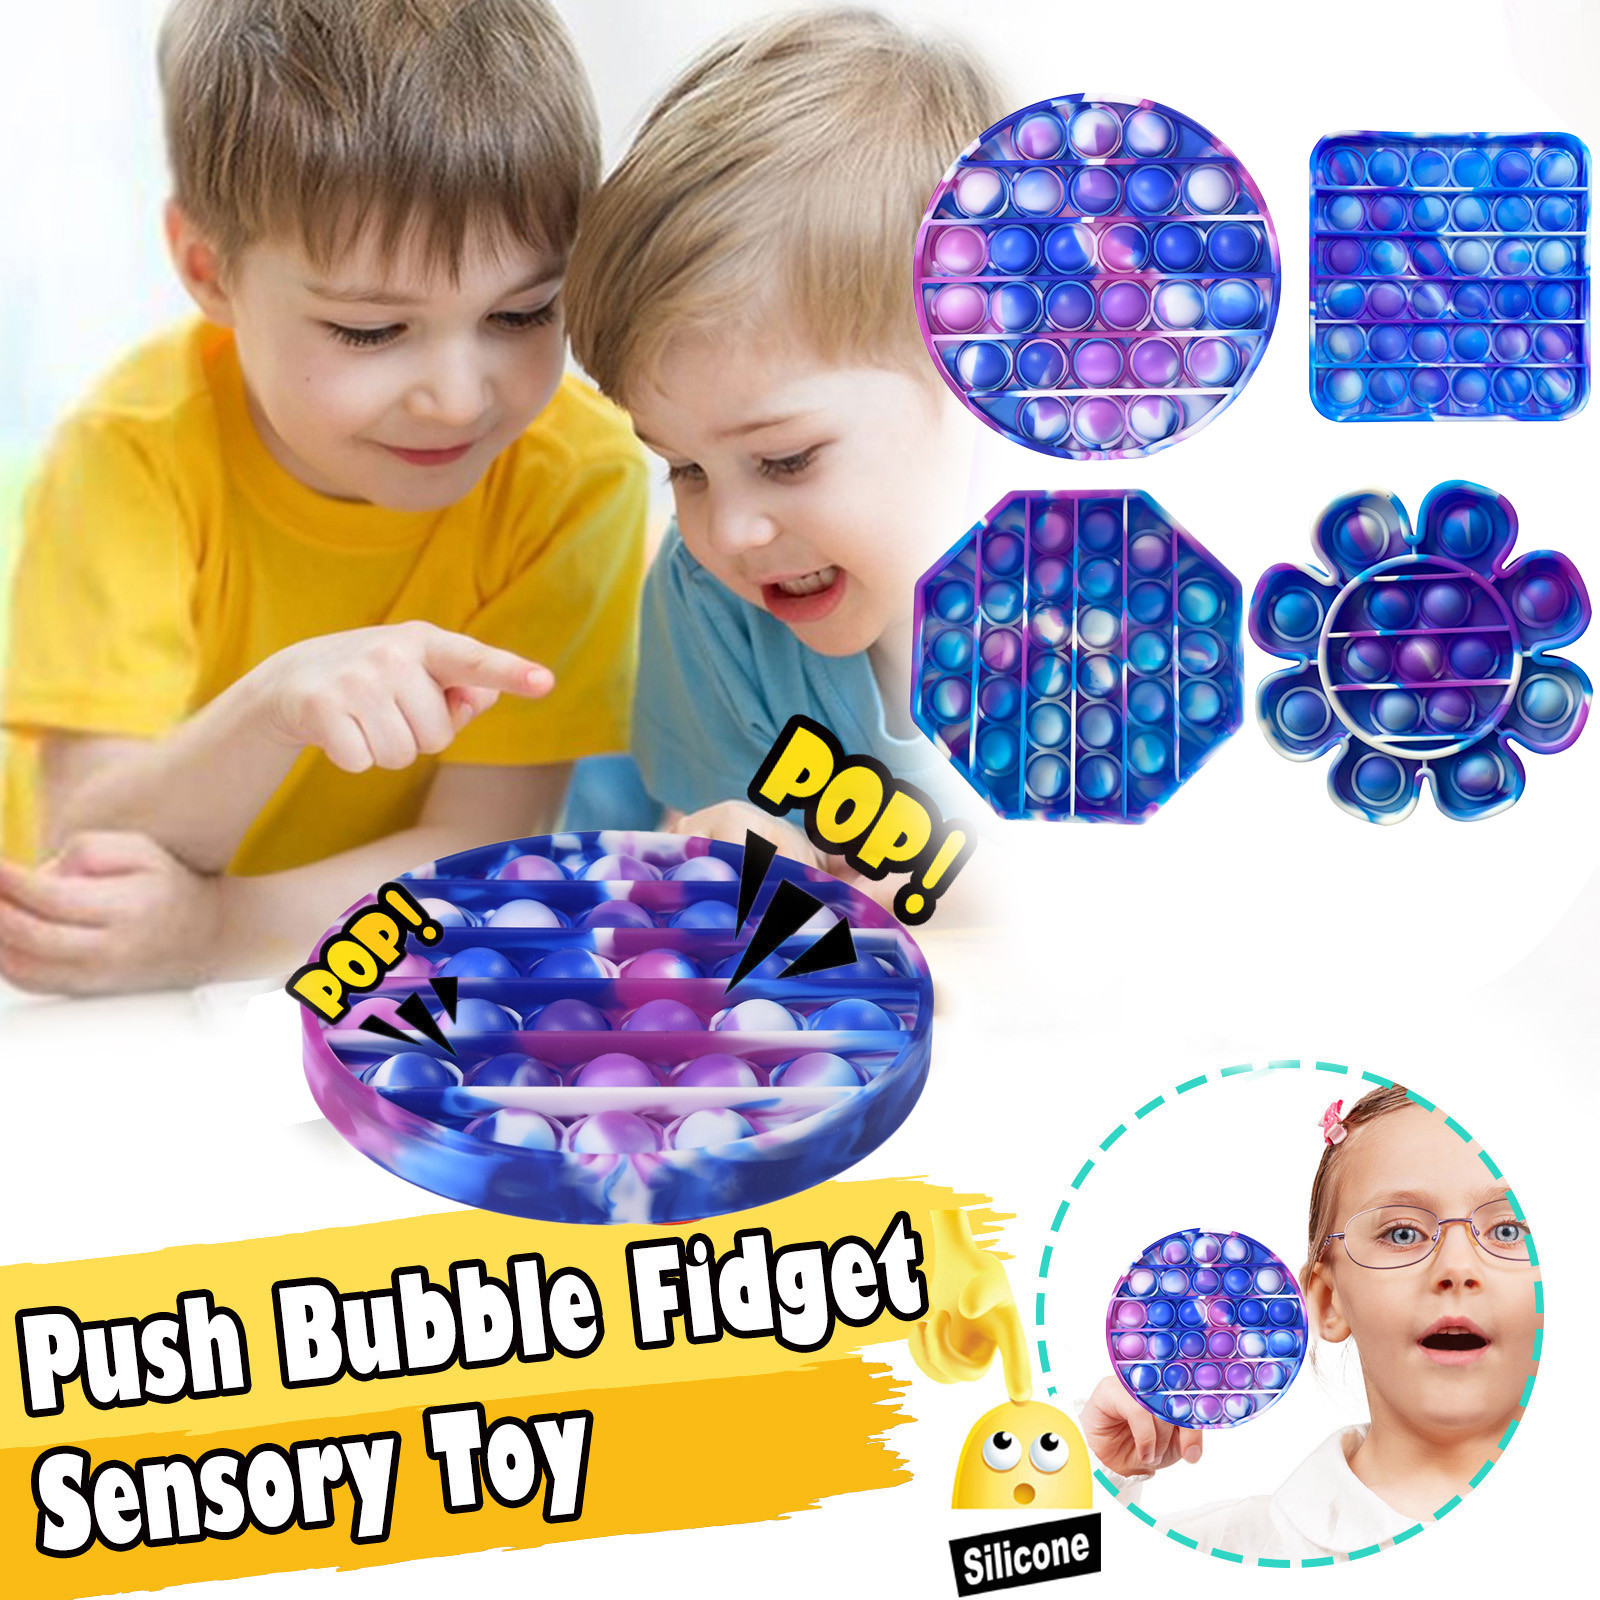 Fidget-Sensory-Toy Game-Stress Bubble Pops Squishy-Pops Special Needs Rainbow-Push Autisim img2